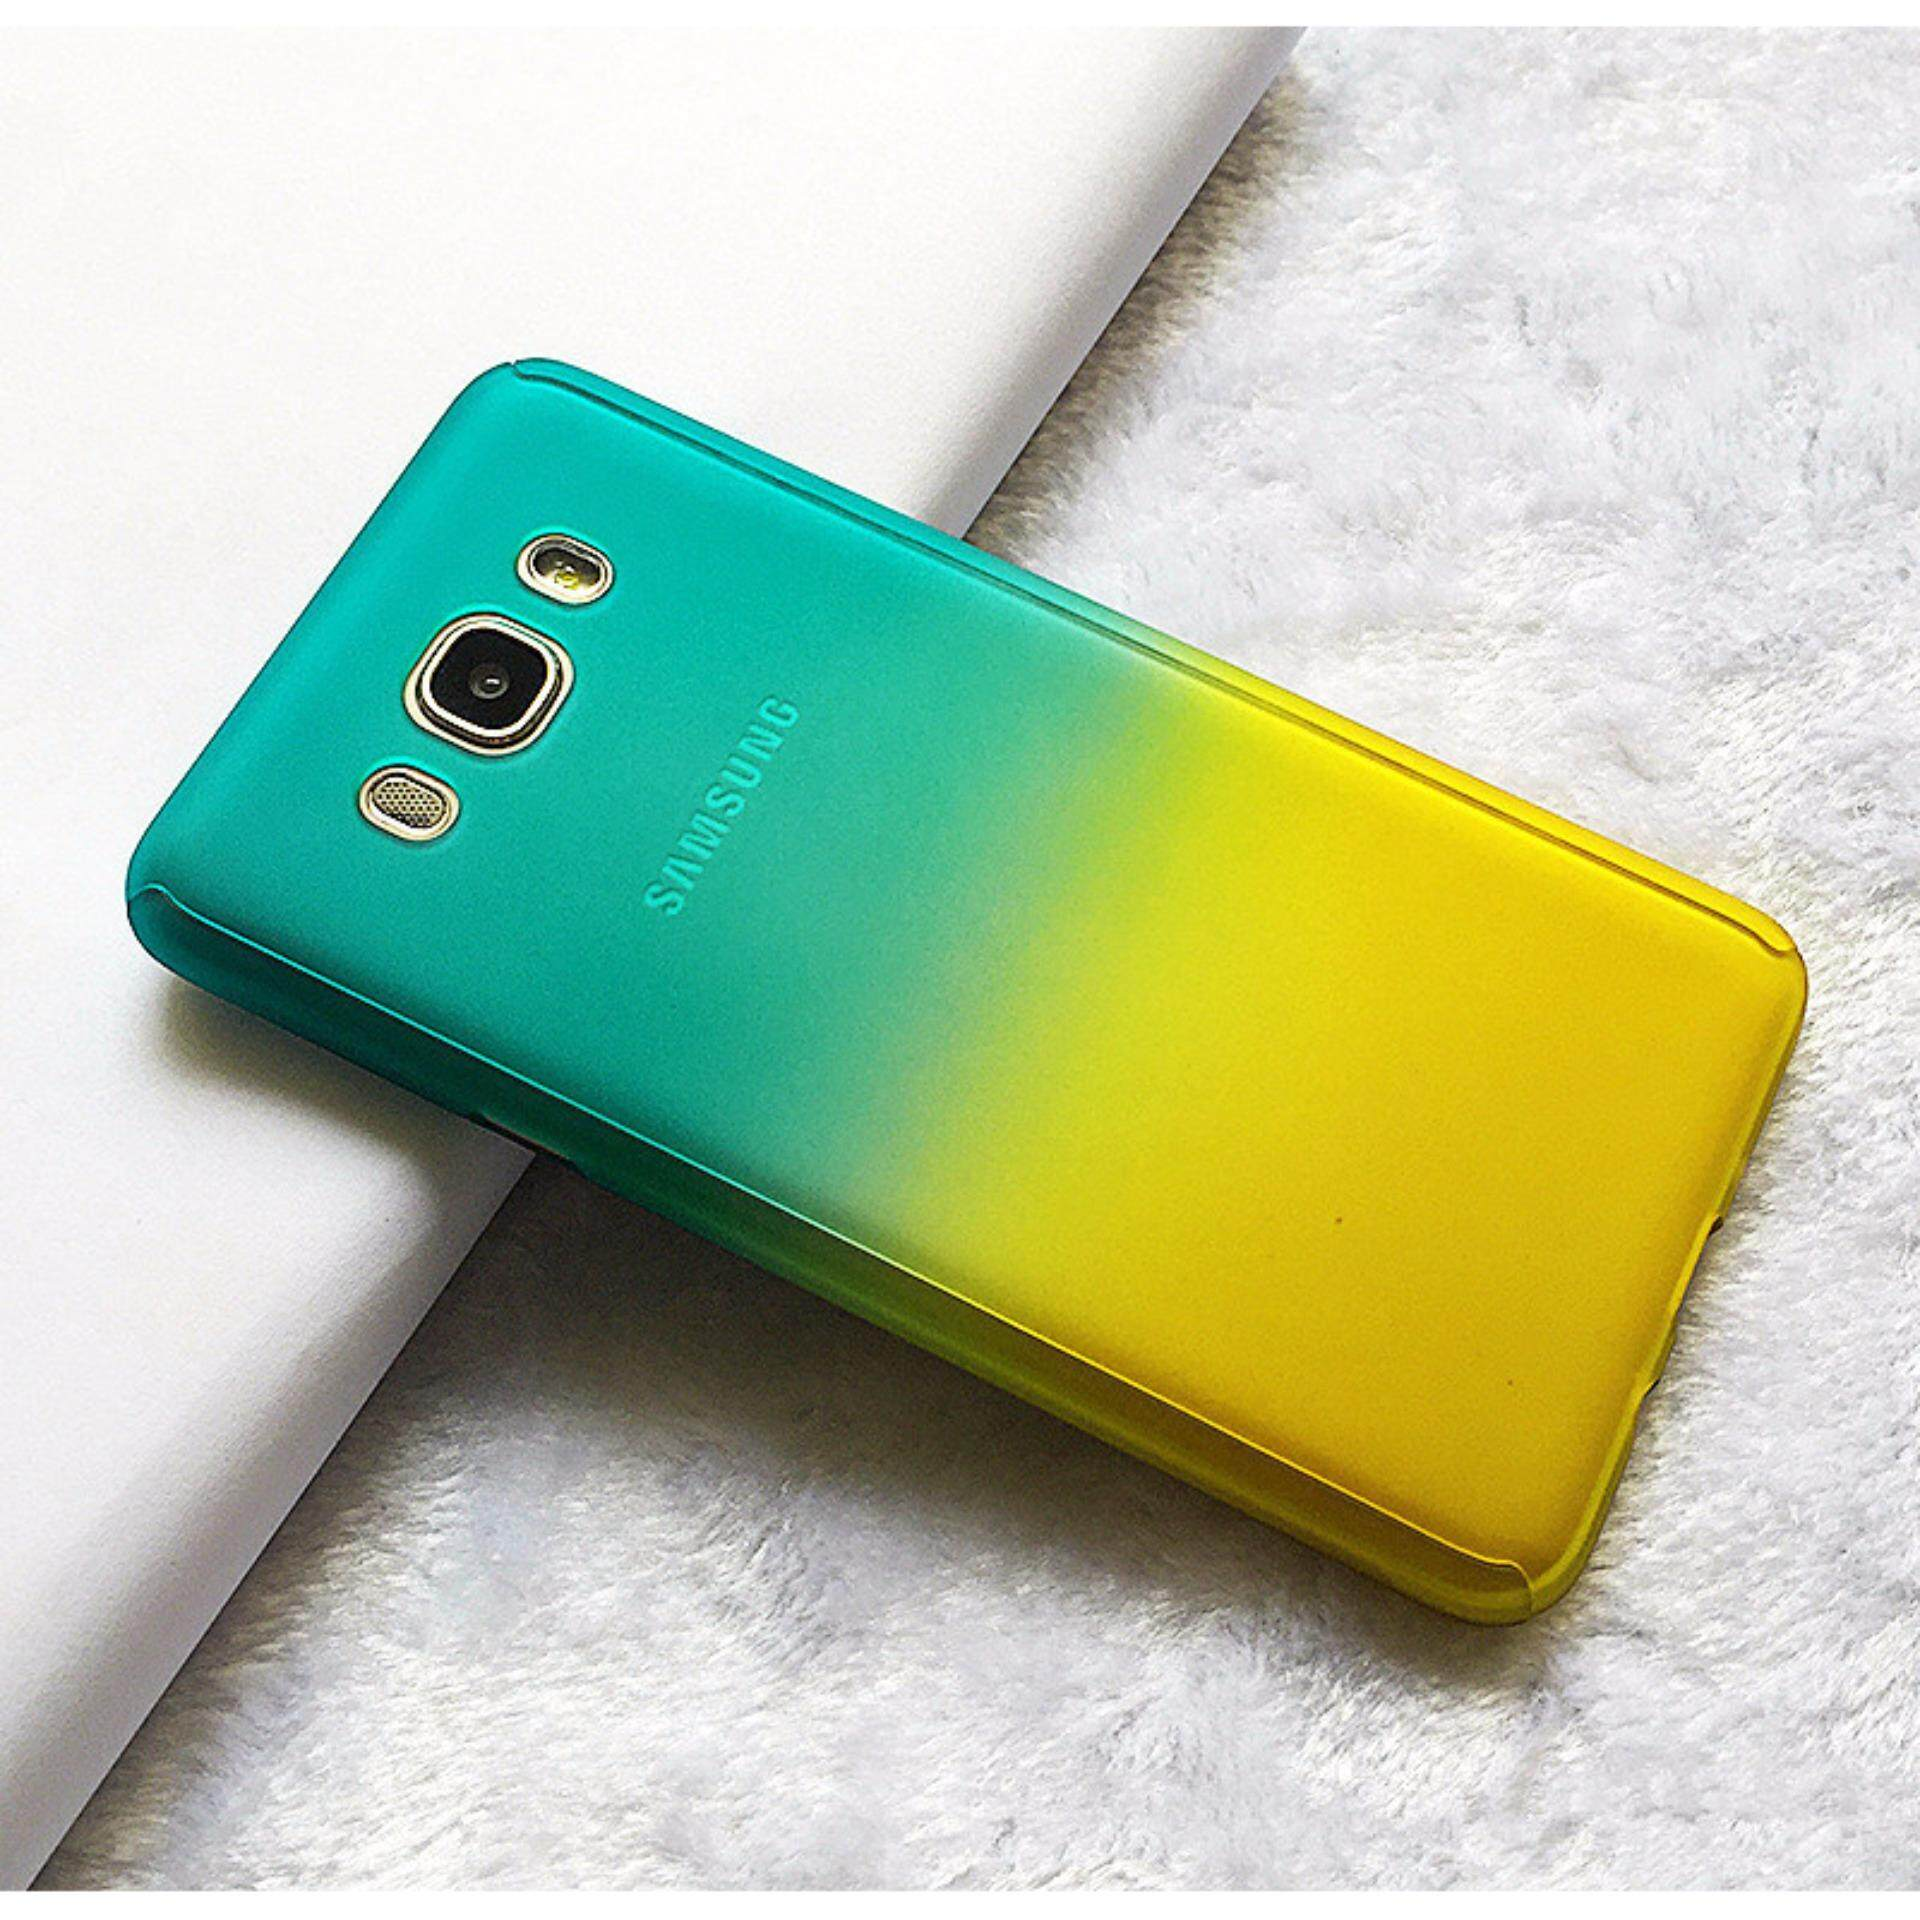 Case Cover with Tempered Glass Screen Protector for Samsung Galaxy NOTE 5 (